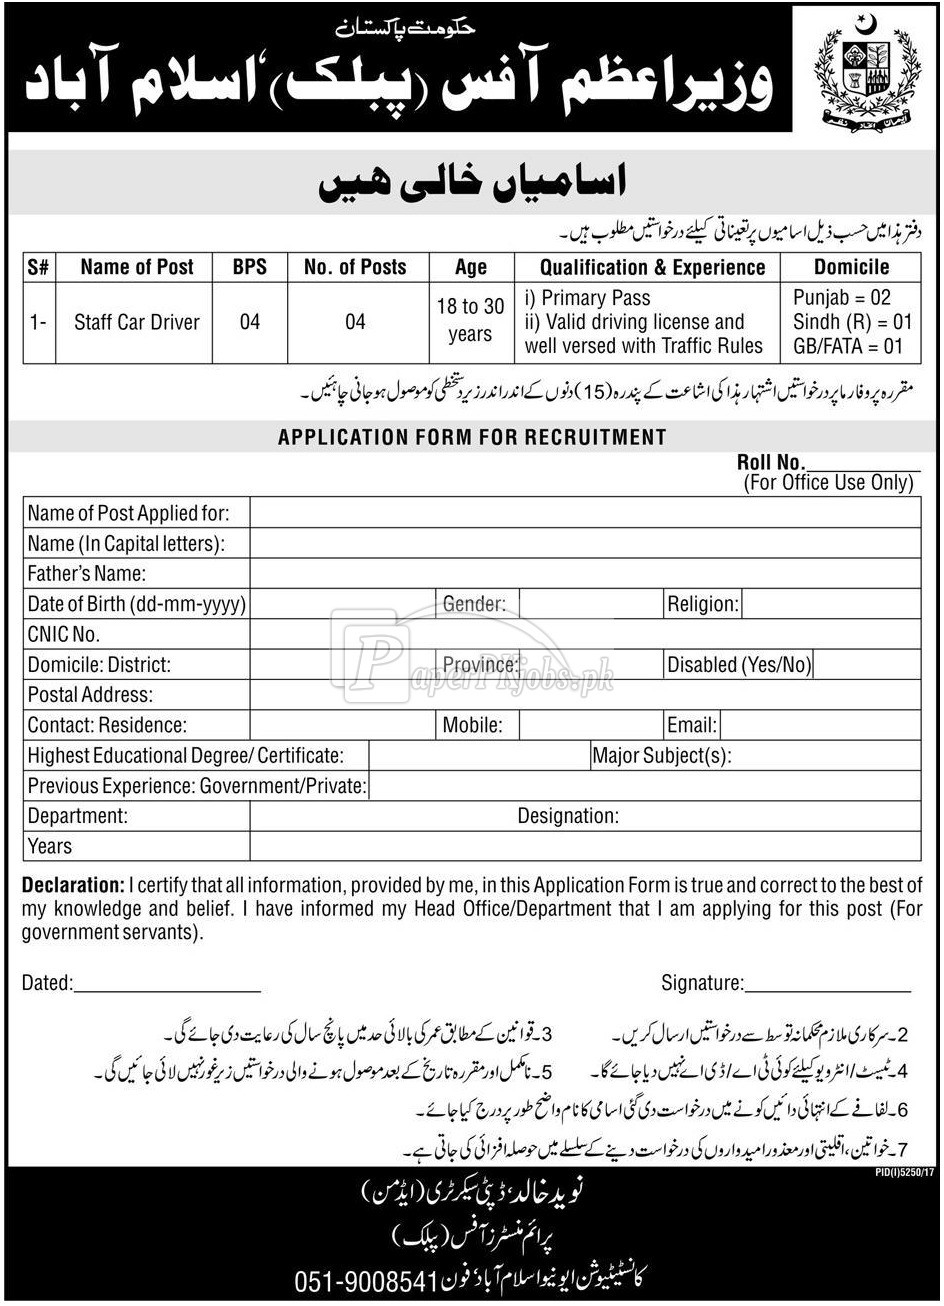 Prime Minister Office Public Islamabad Jobs 2018